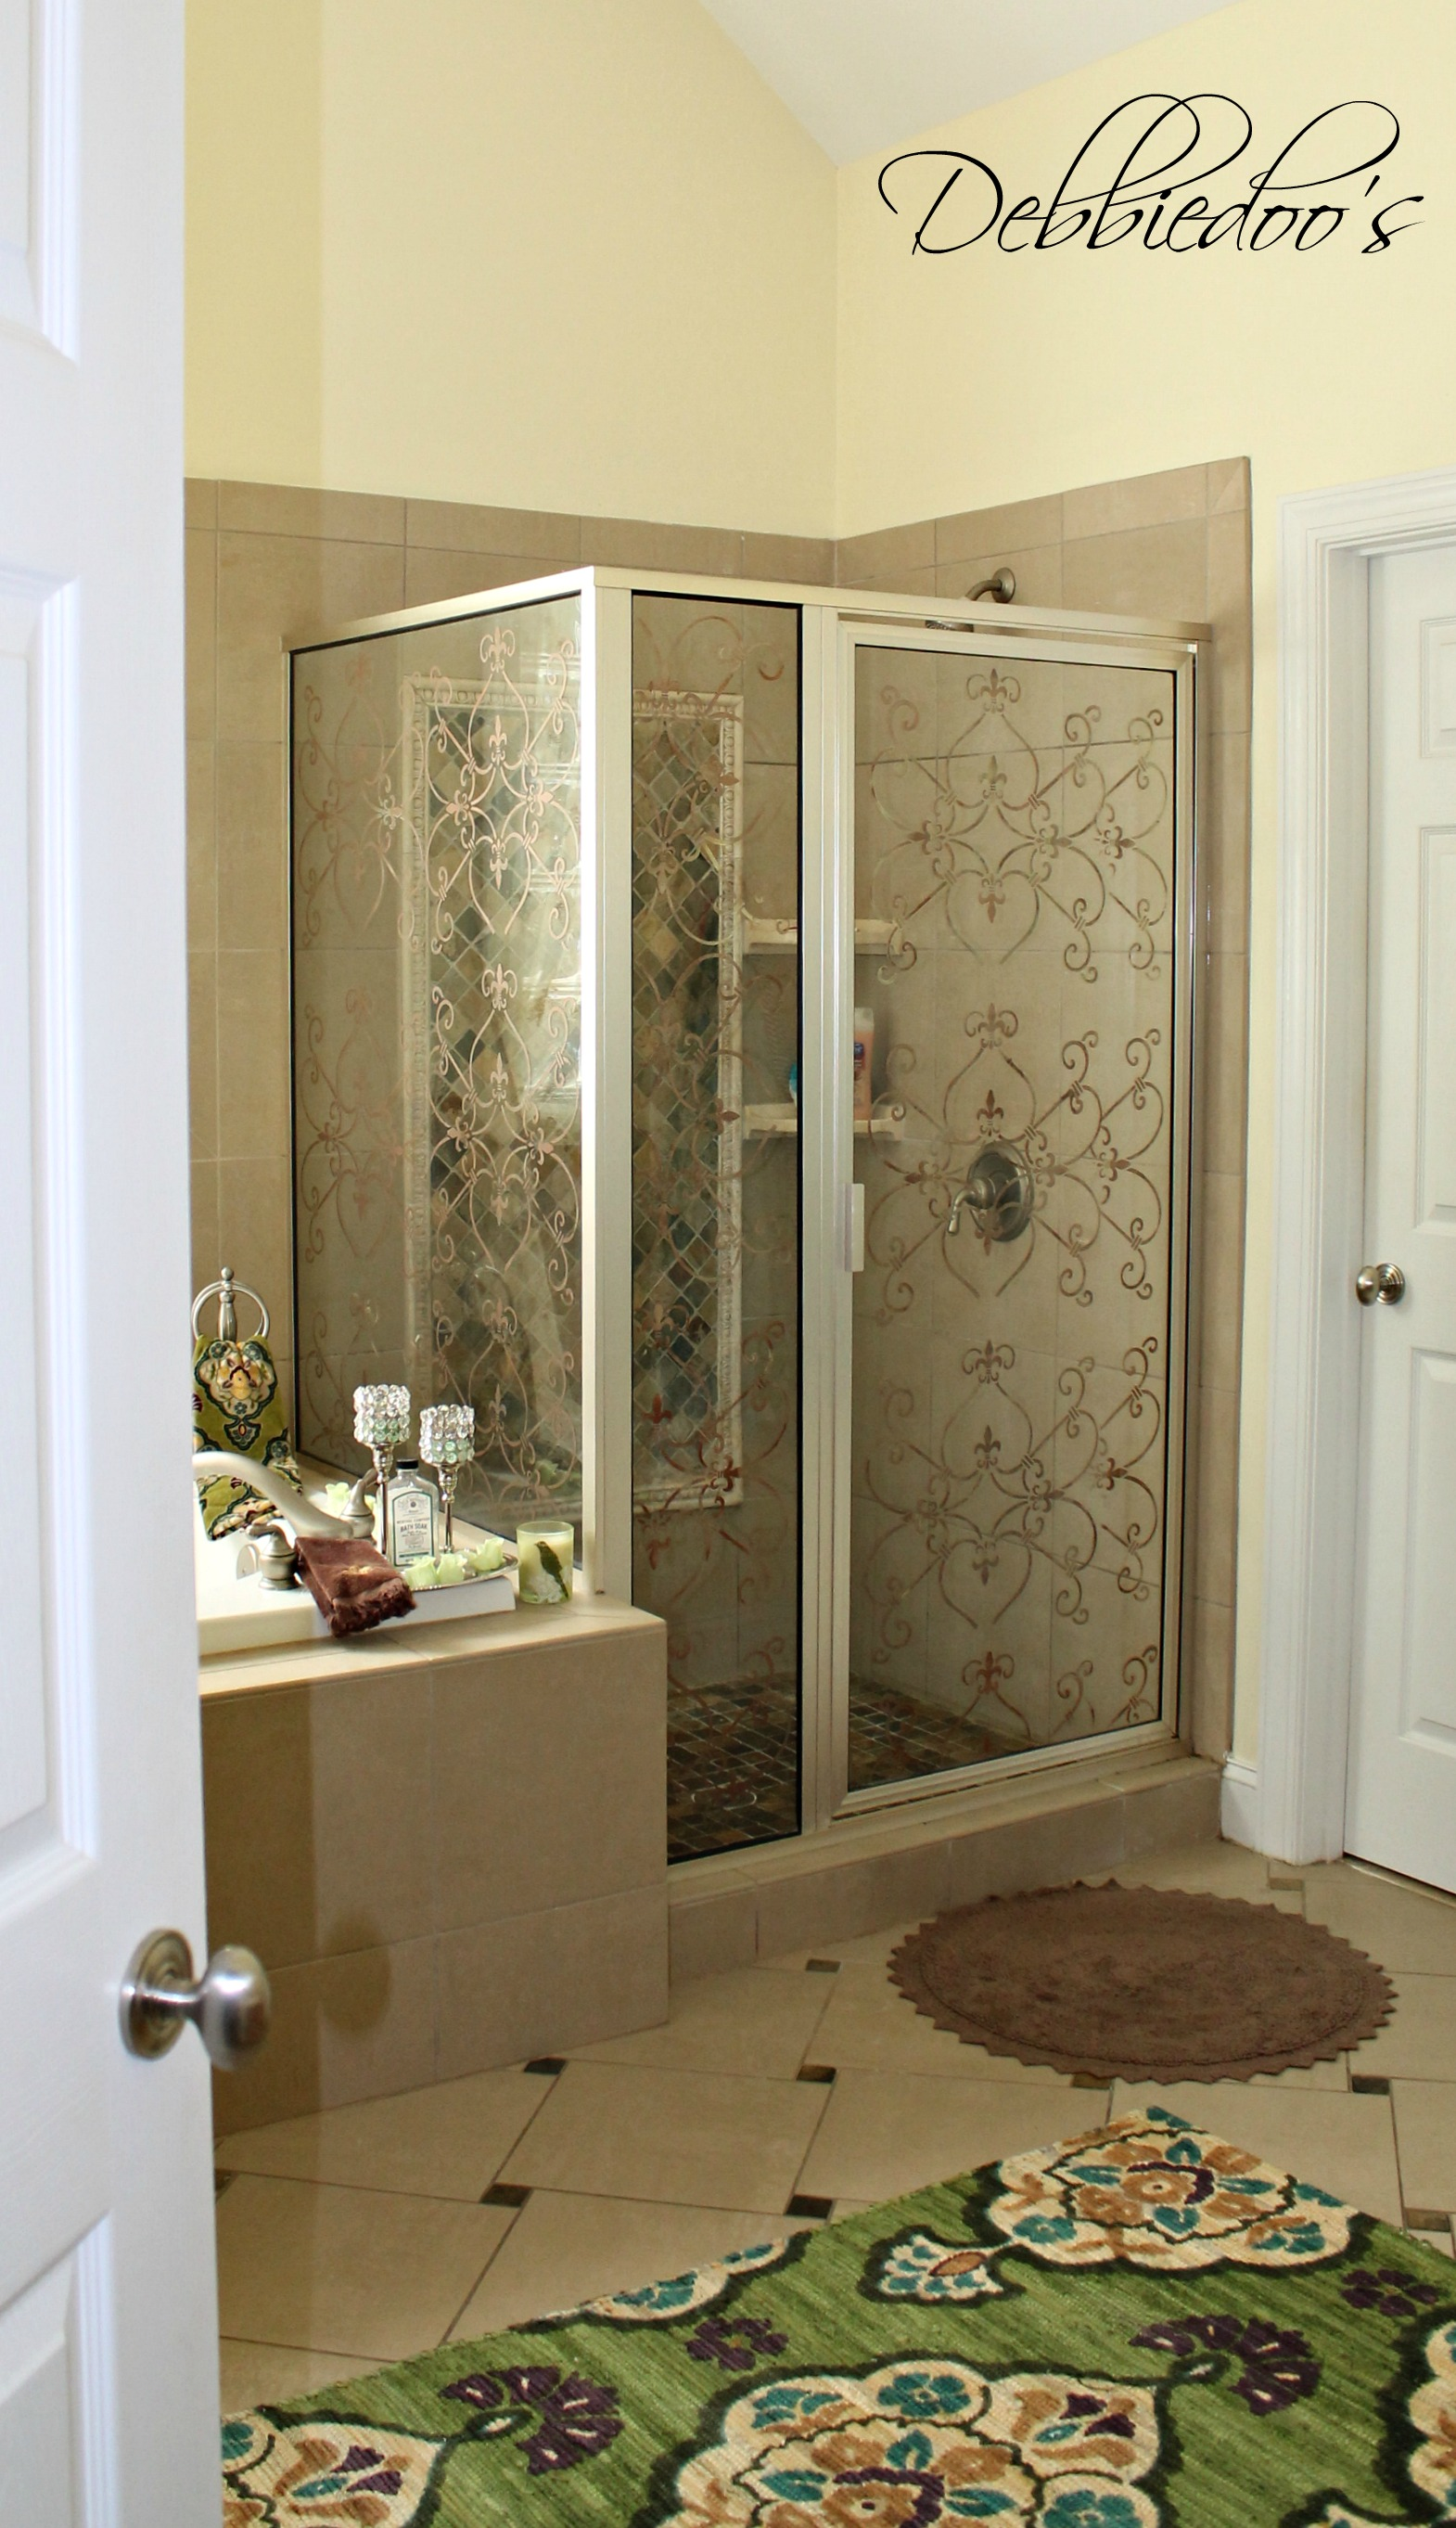 bathroom refreshed and stenciled shower door